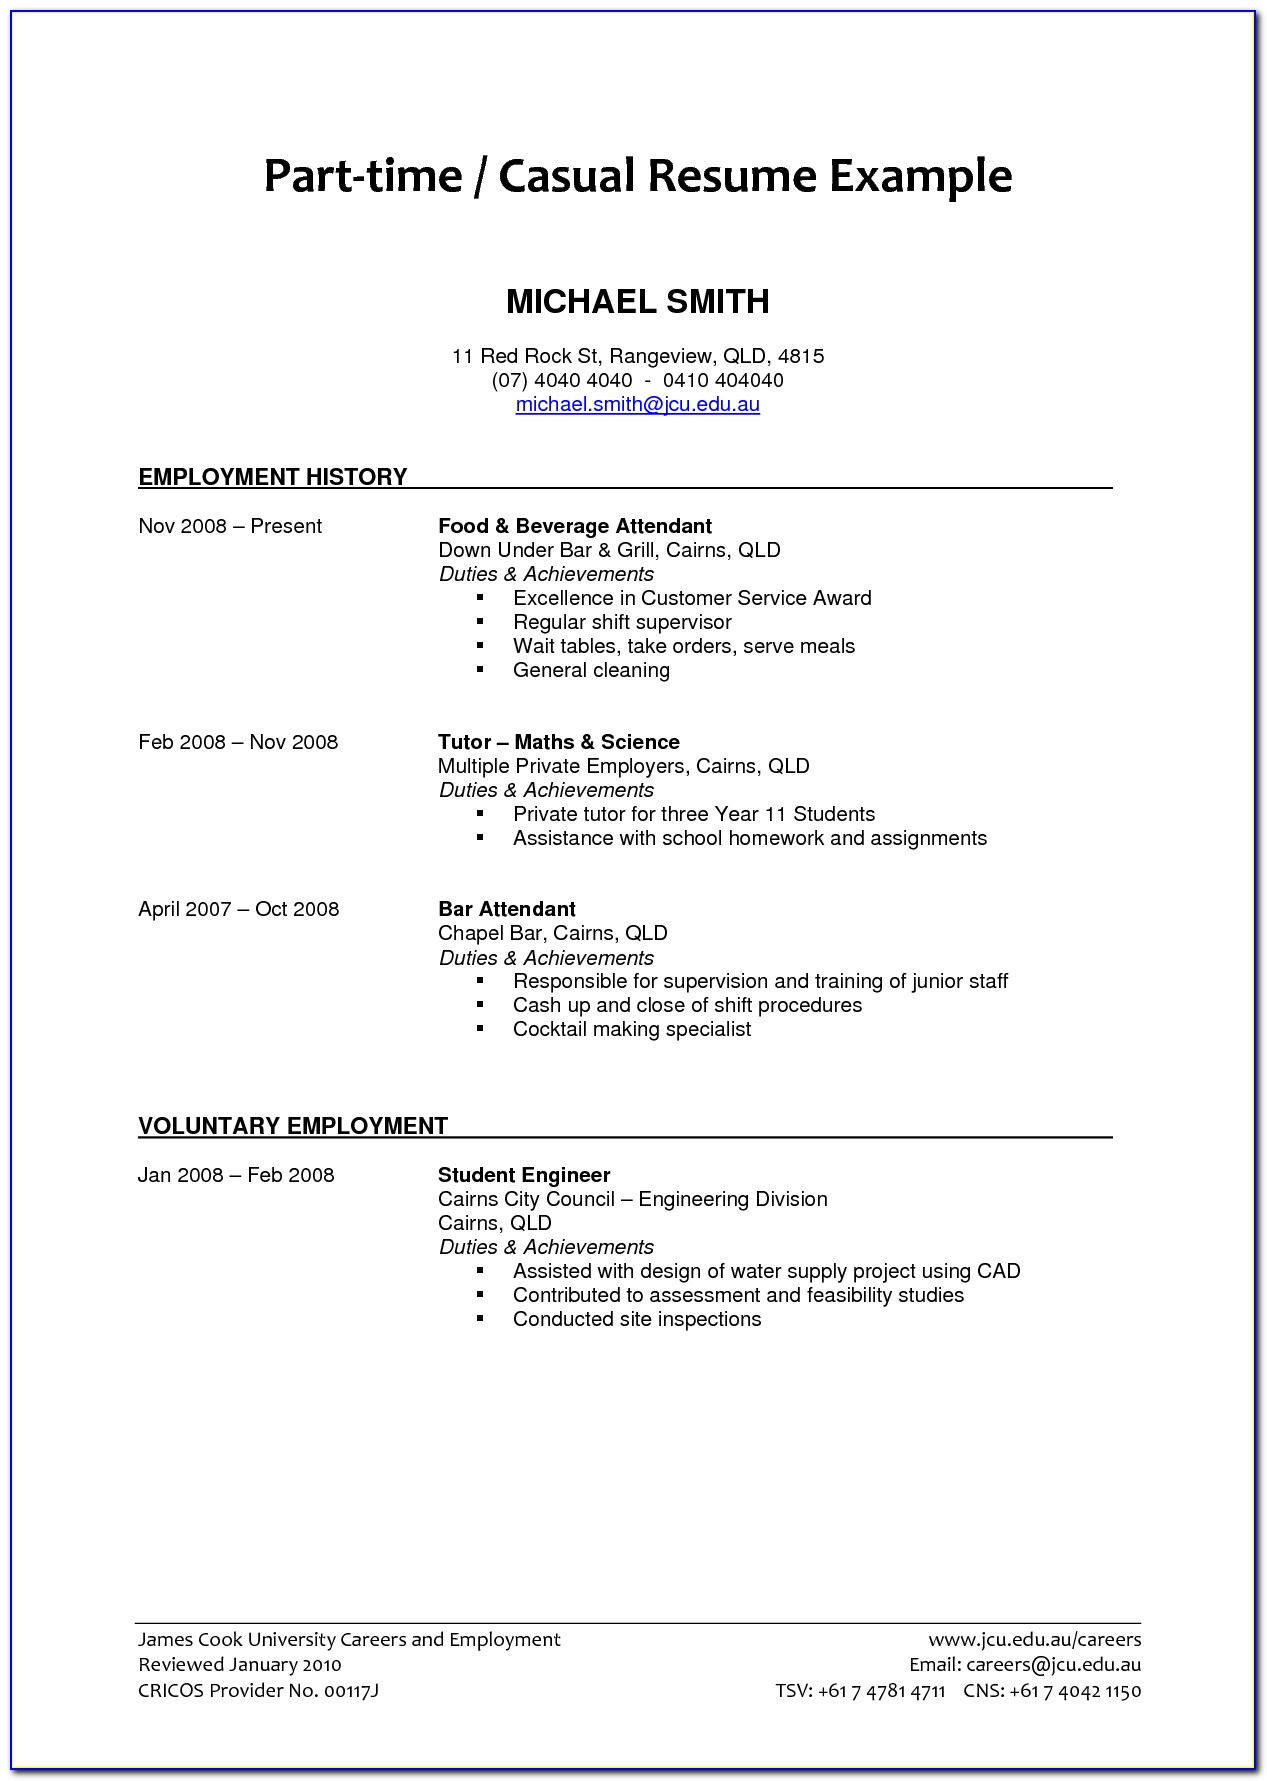 Resume Examples For Part Time Jobs